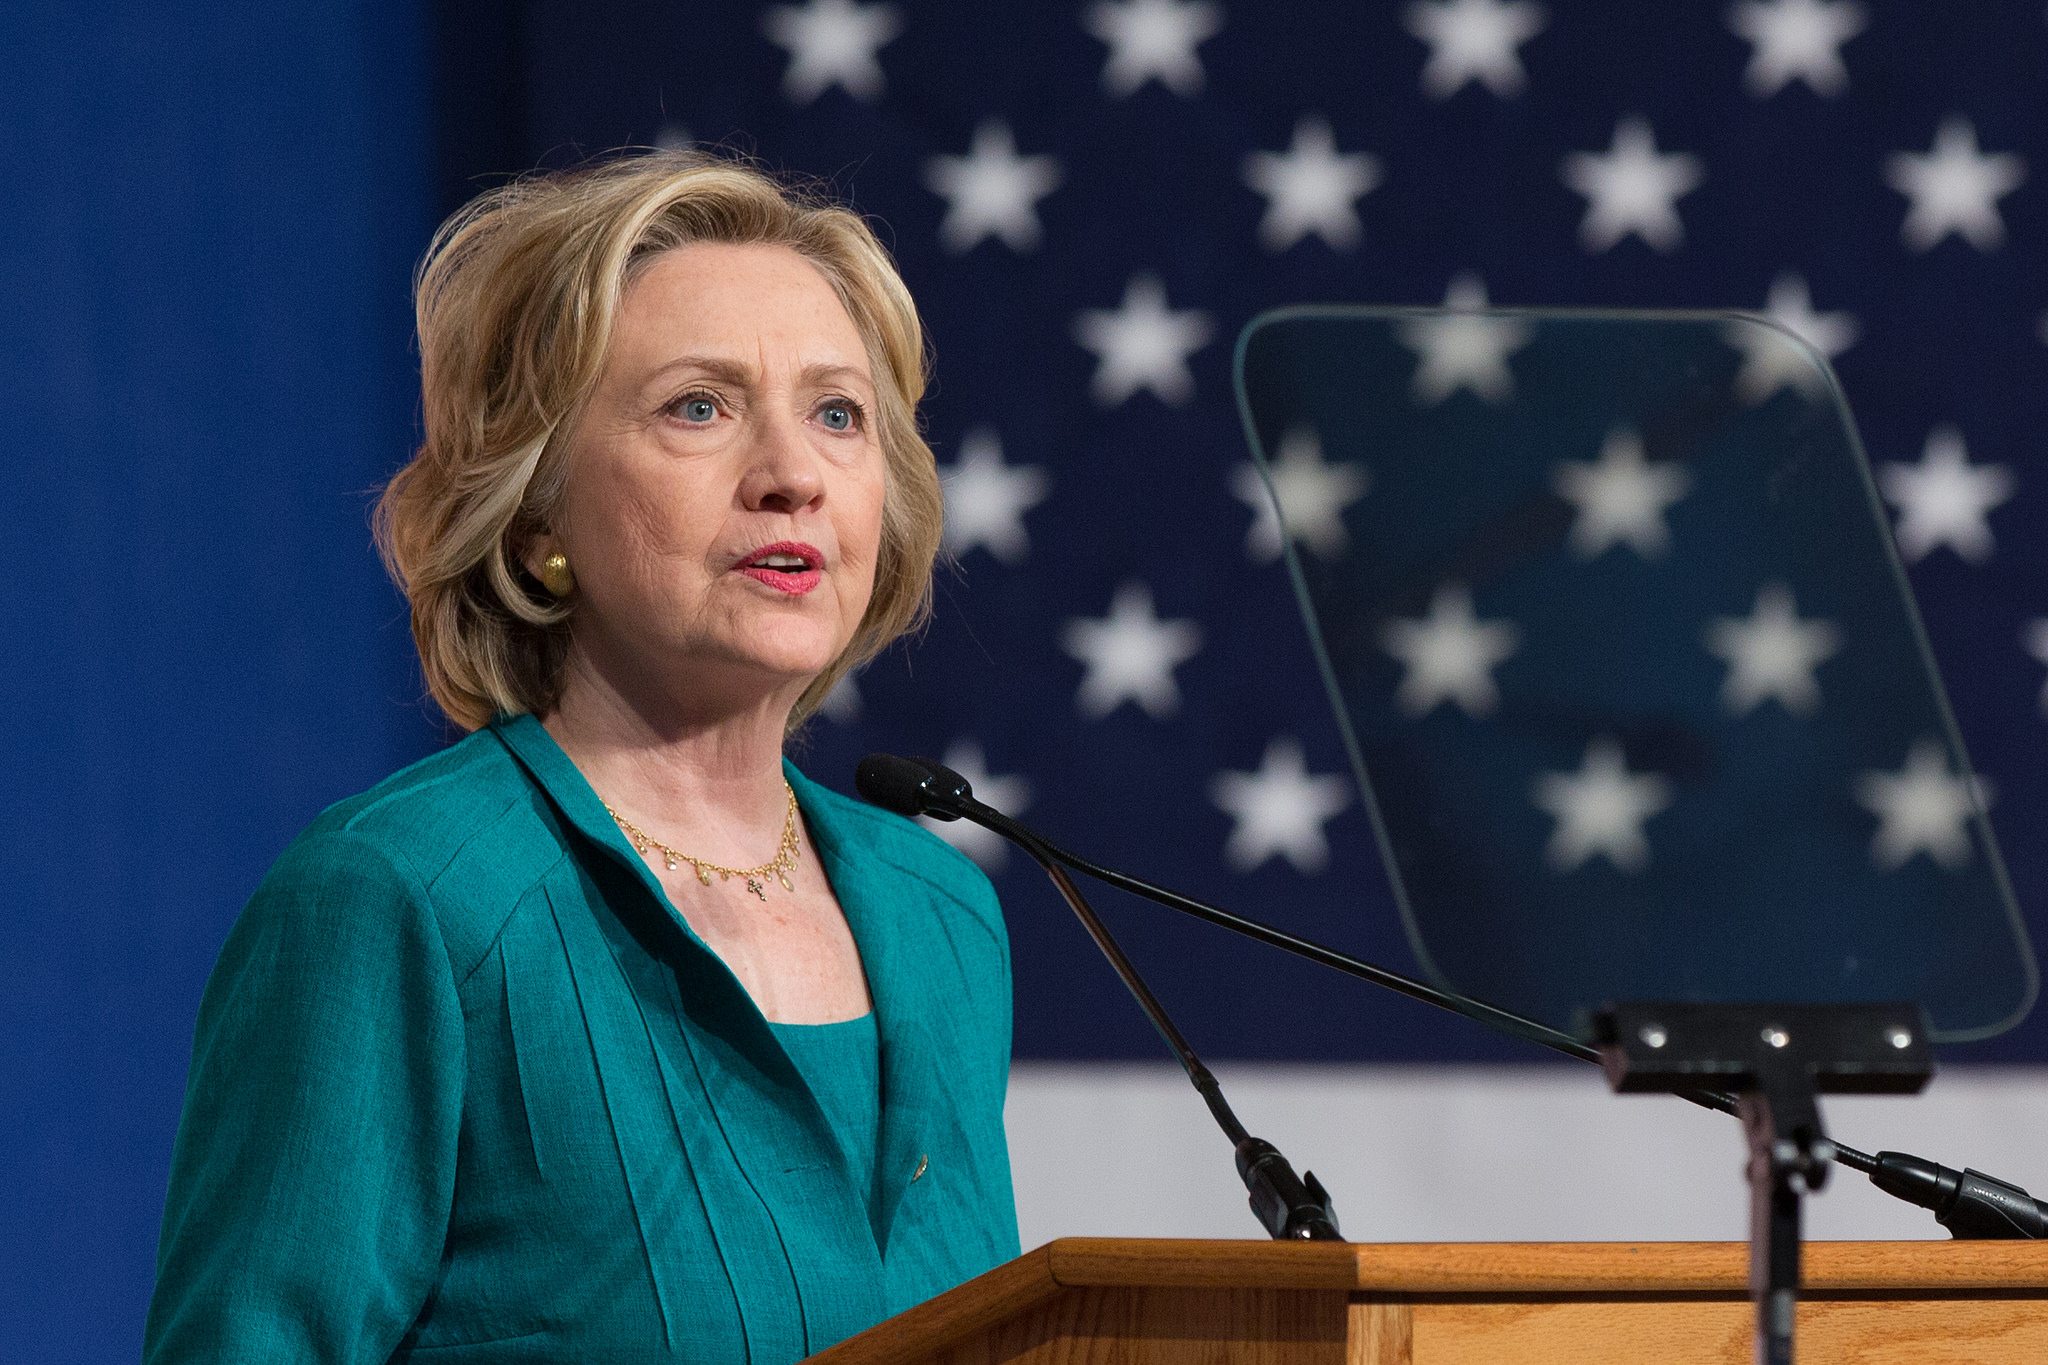 In FIU speech, Clinton calls for end to Cuba embargo